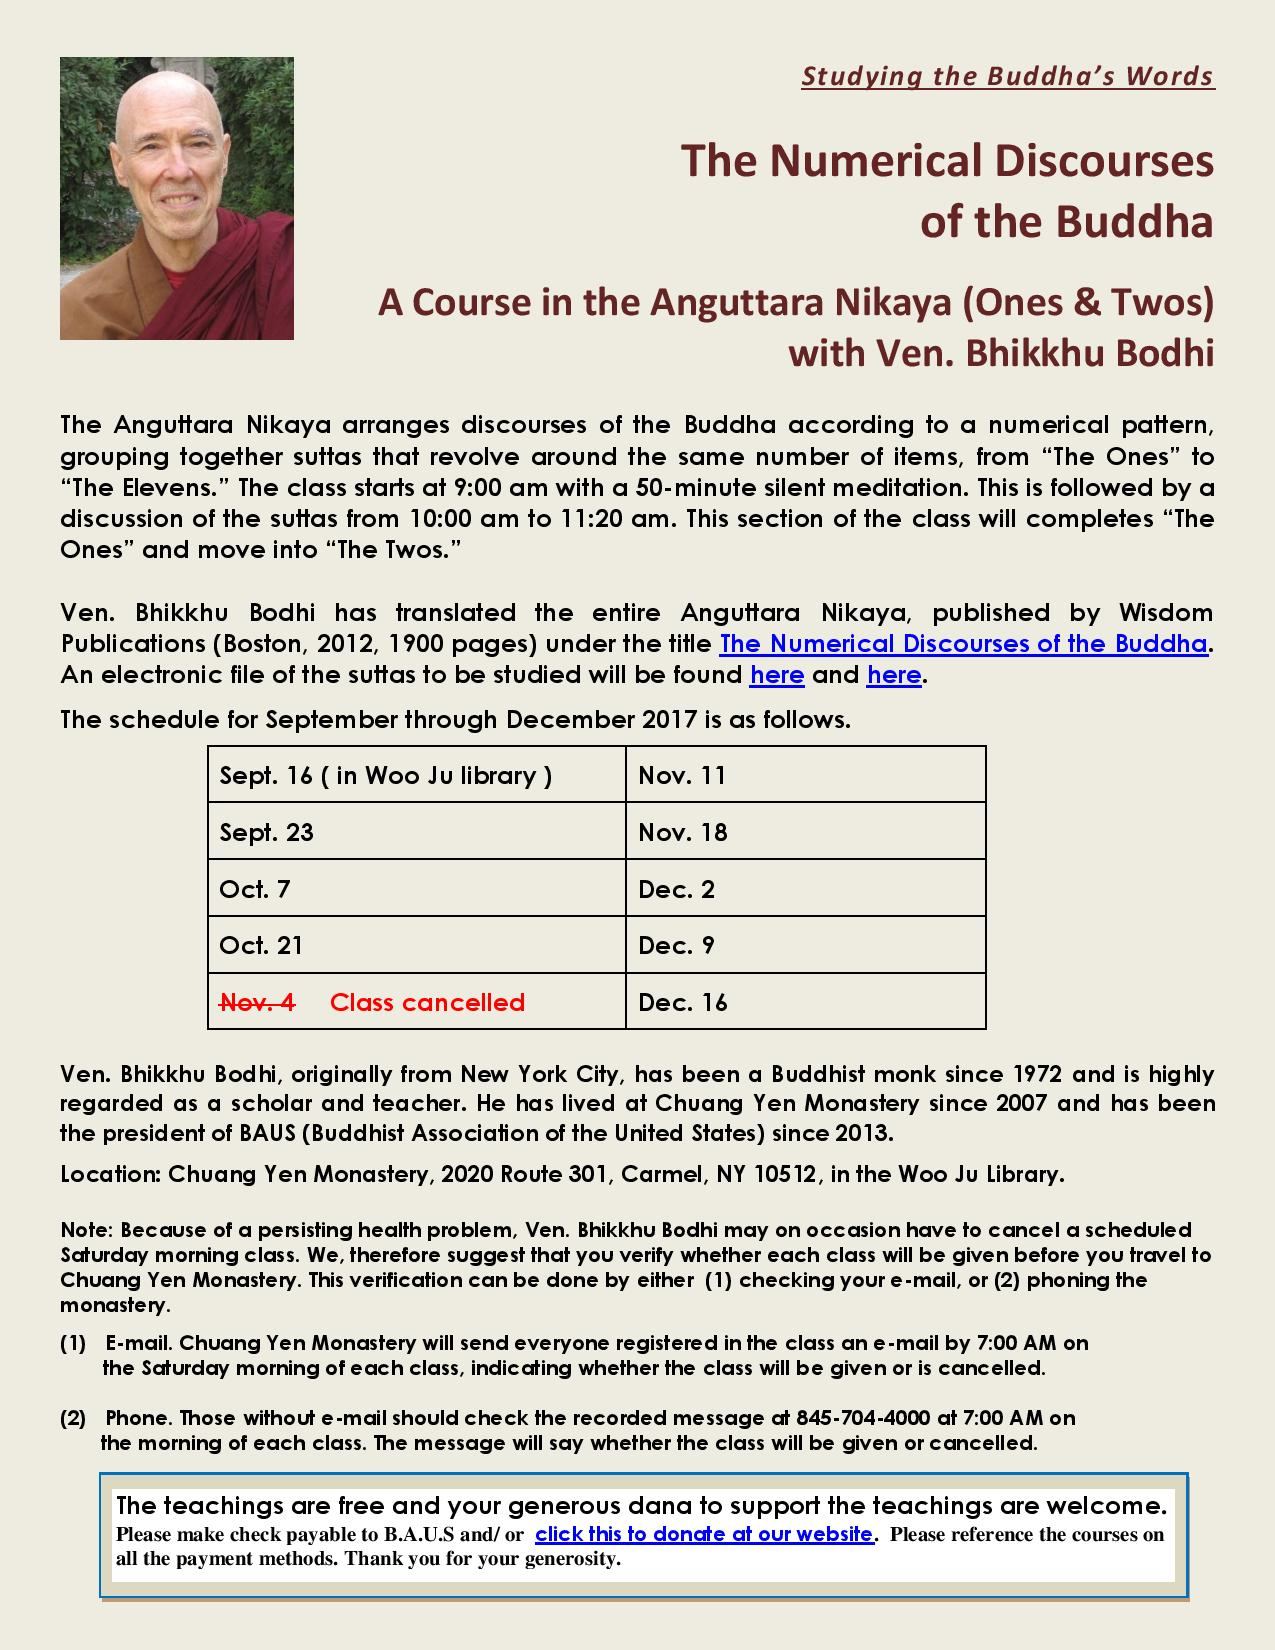 A Course in the Anguttara Nikaya (Ones & Twos) with Ven. Bhikkhu Bodhi at CYM